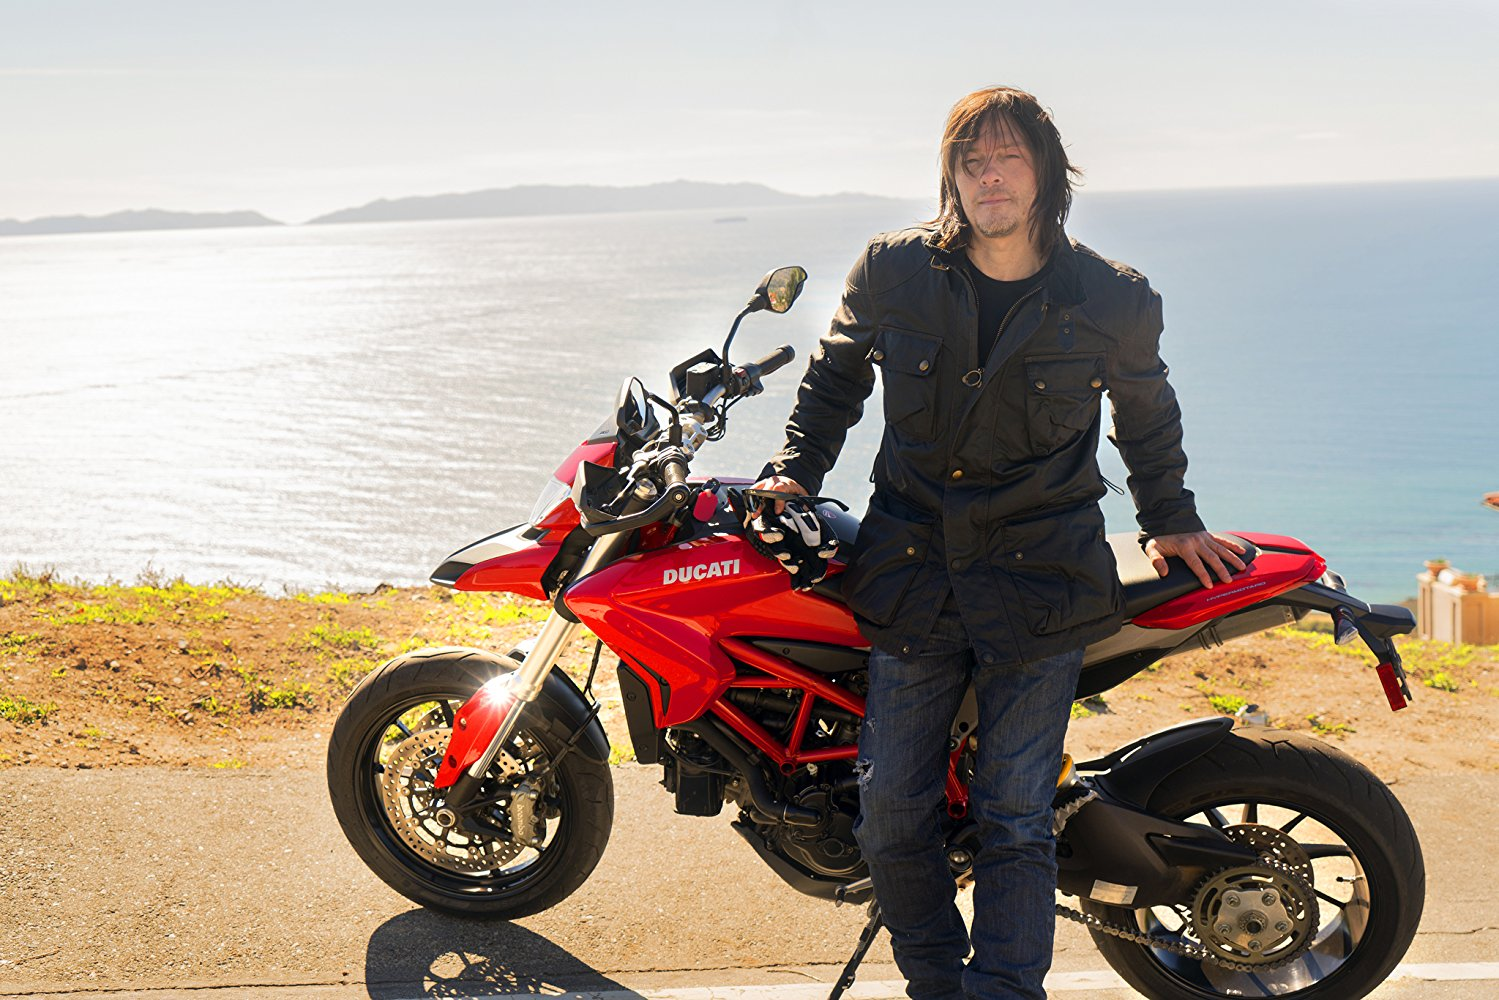 Ride With Norman Reedus Season 2 Watch Online For Free Solarmovie